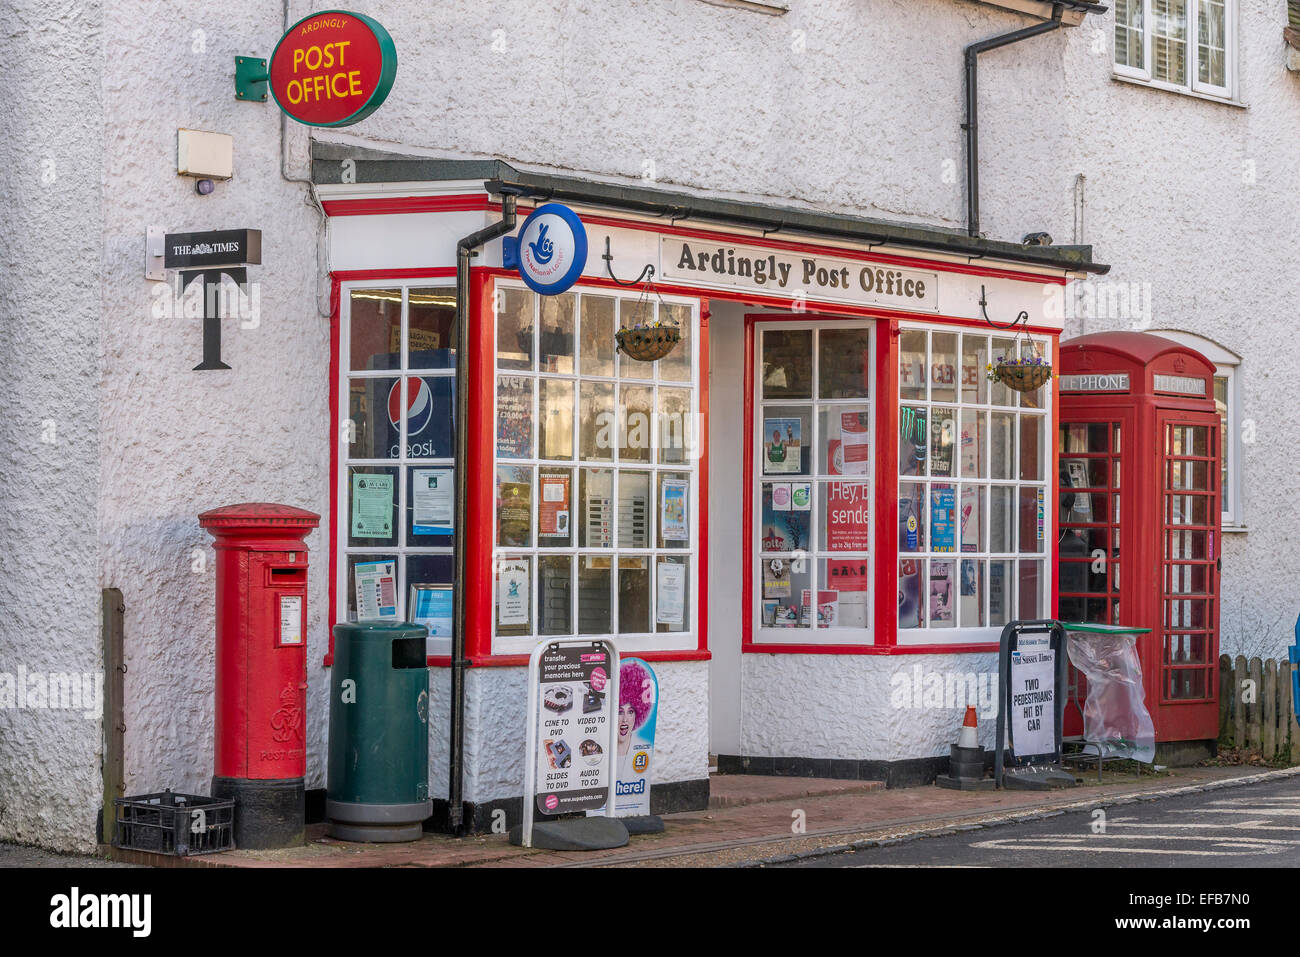 Ardingly Post Office. West Sussex. England. UK - Stock Image